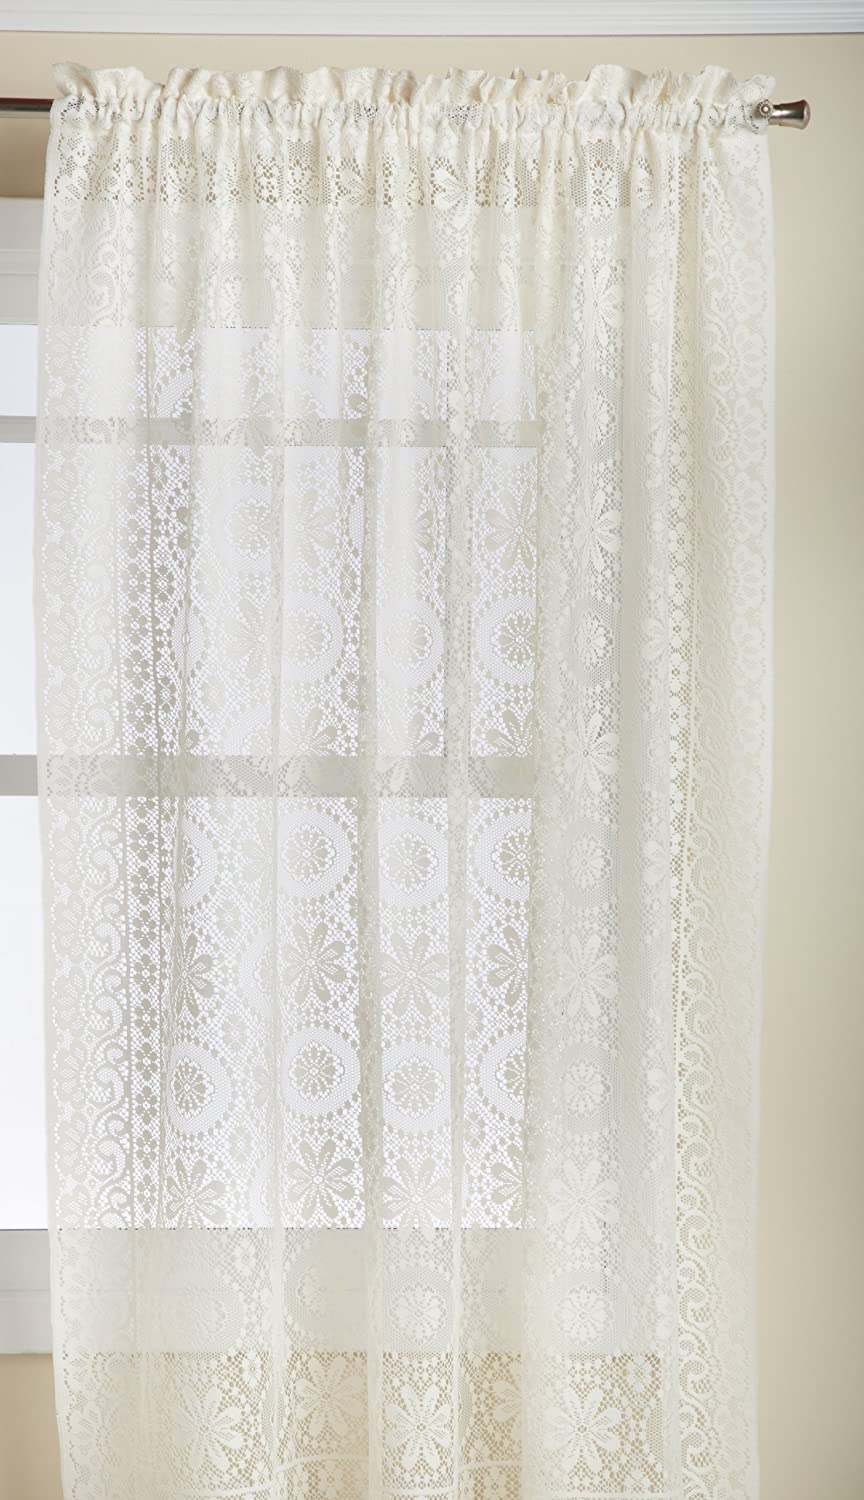 Hopewell Lace Kitchen Curtain - 24 tier (pr) - WHITE by The_Curtain_Shop Lorraine Home Fashions